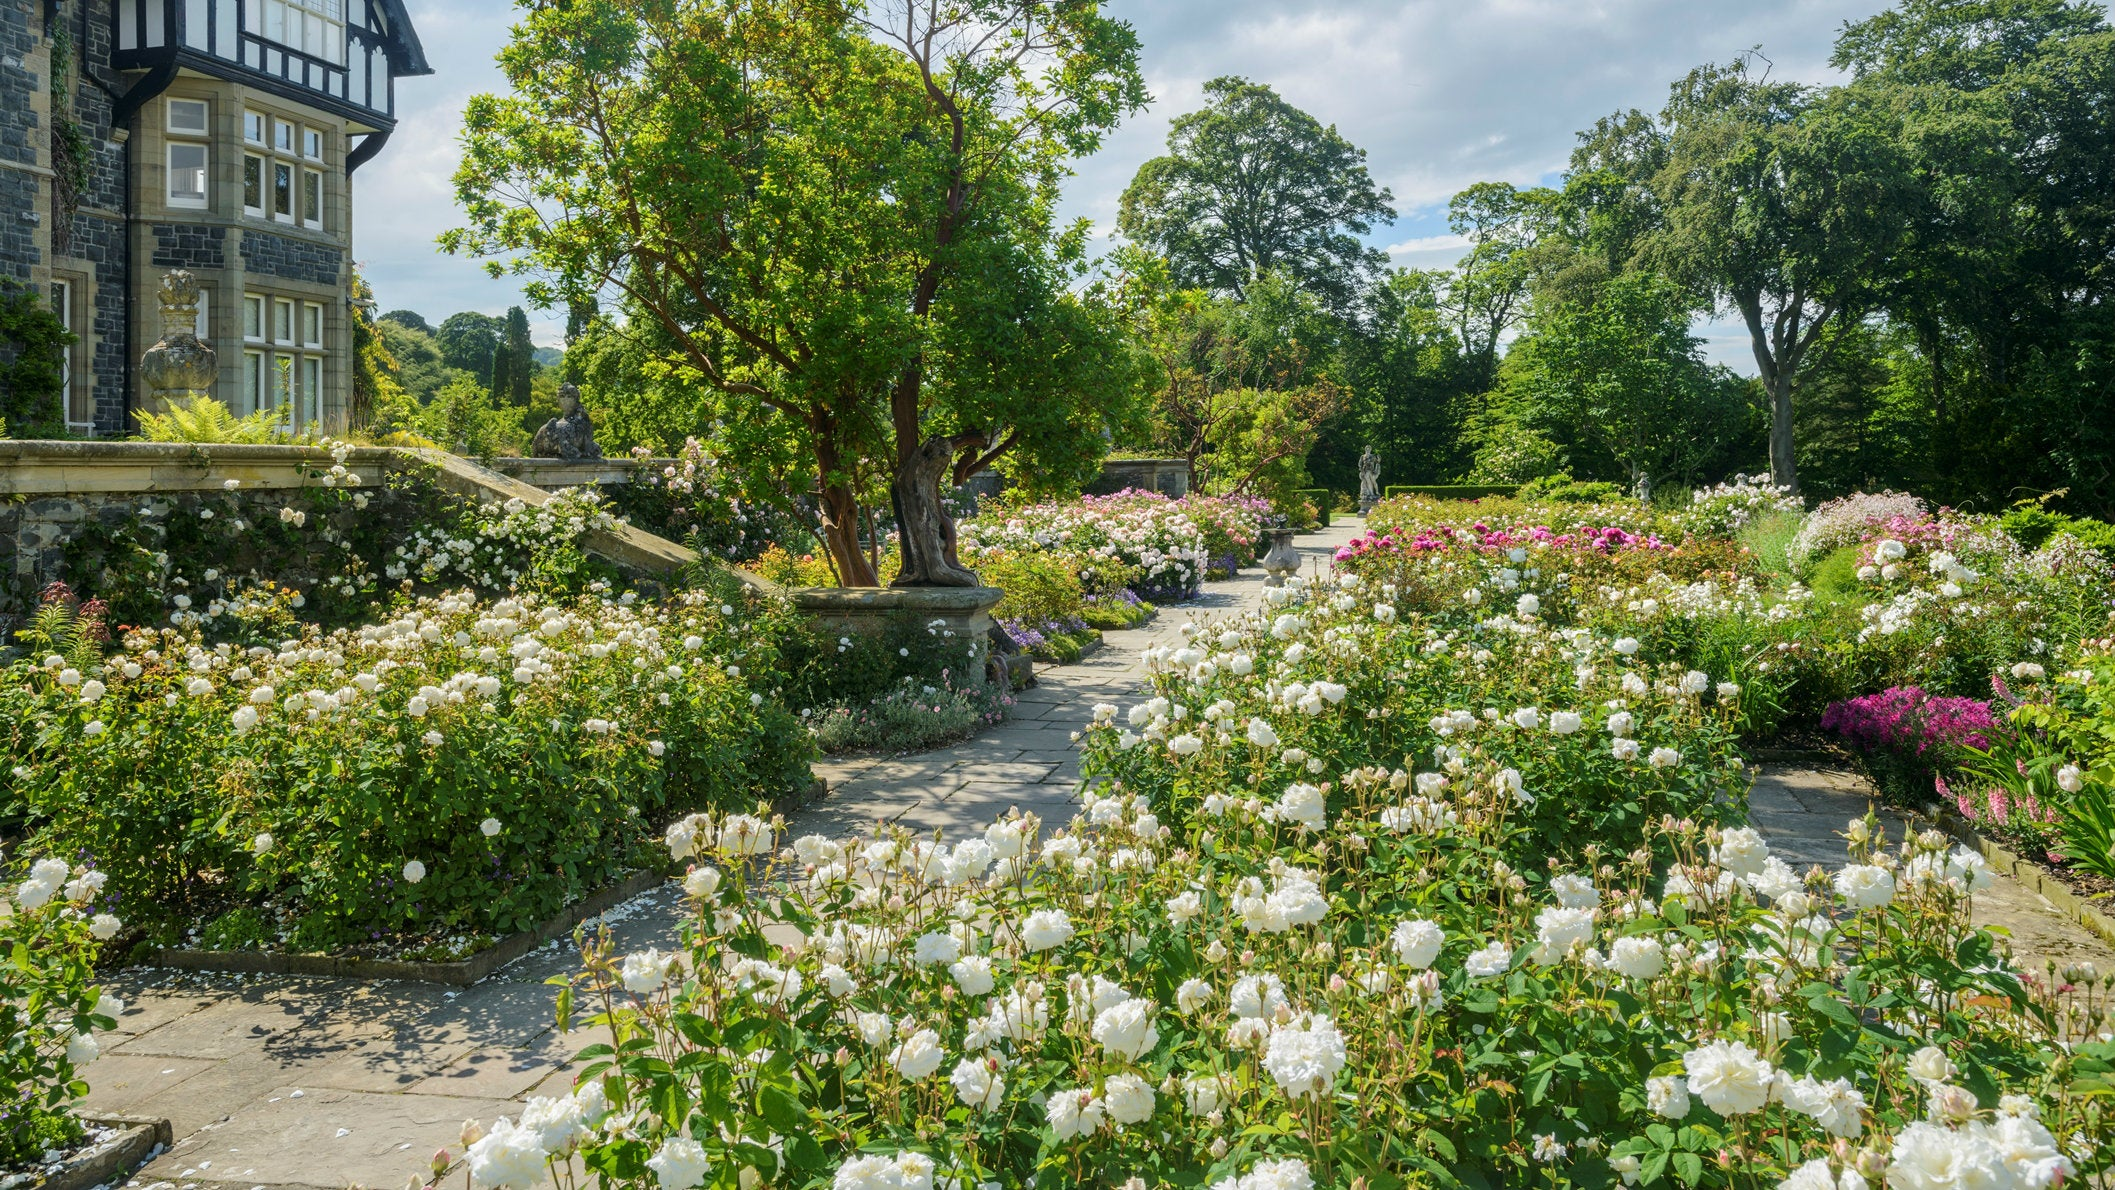 The Top Rose Terrace at Bodnant Garden